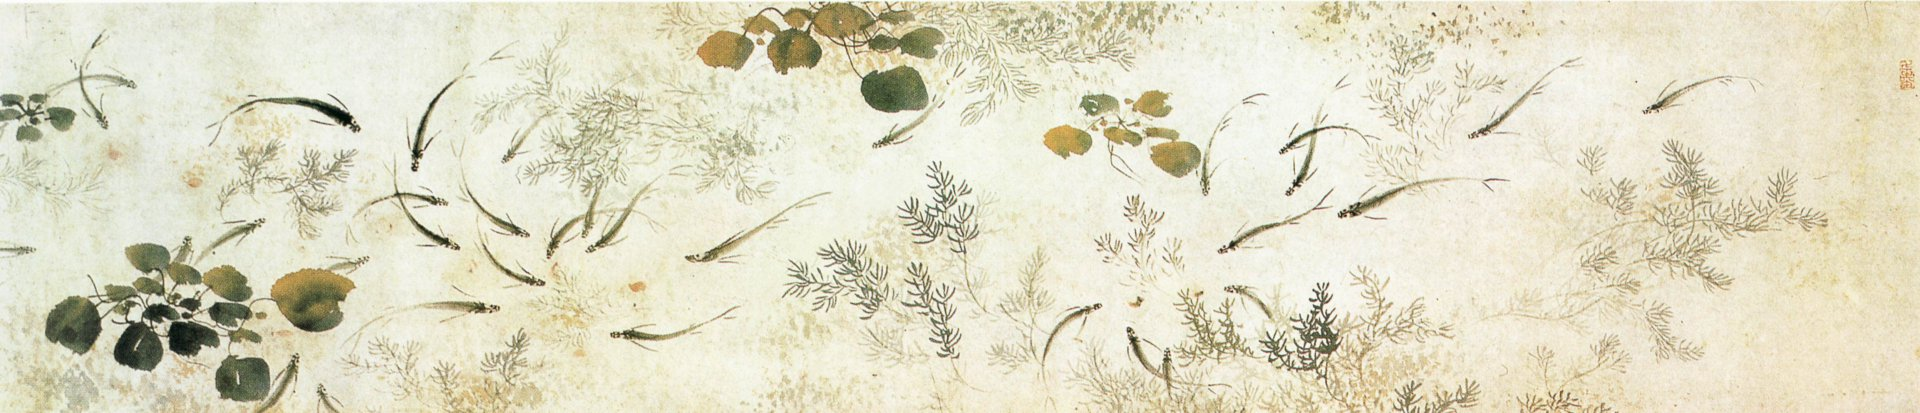 053_1b0189a.Ancient_Chinese_Painting.jpg